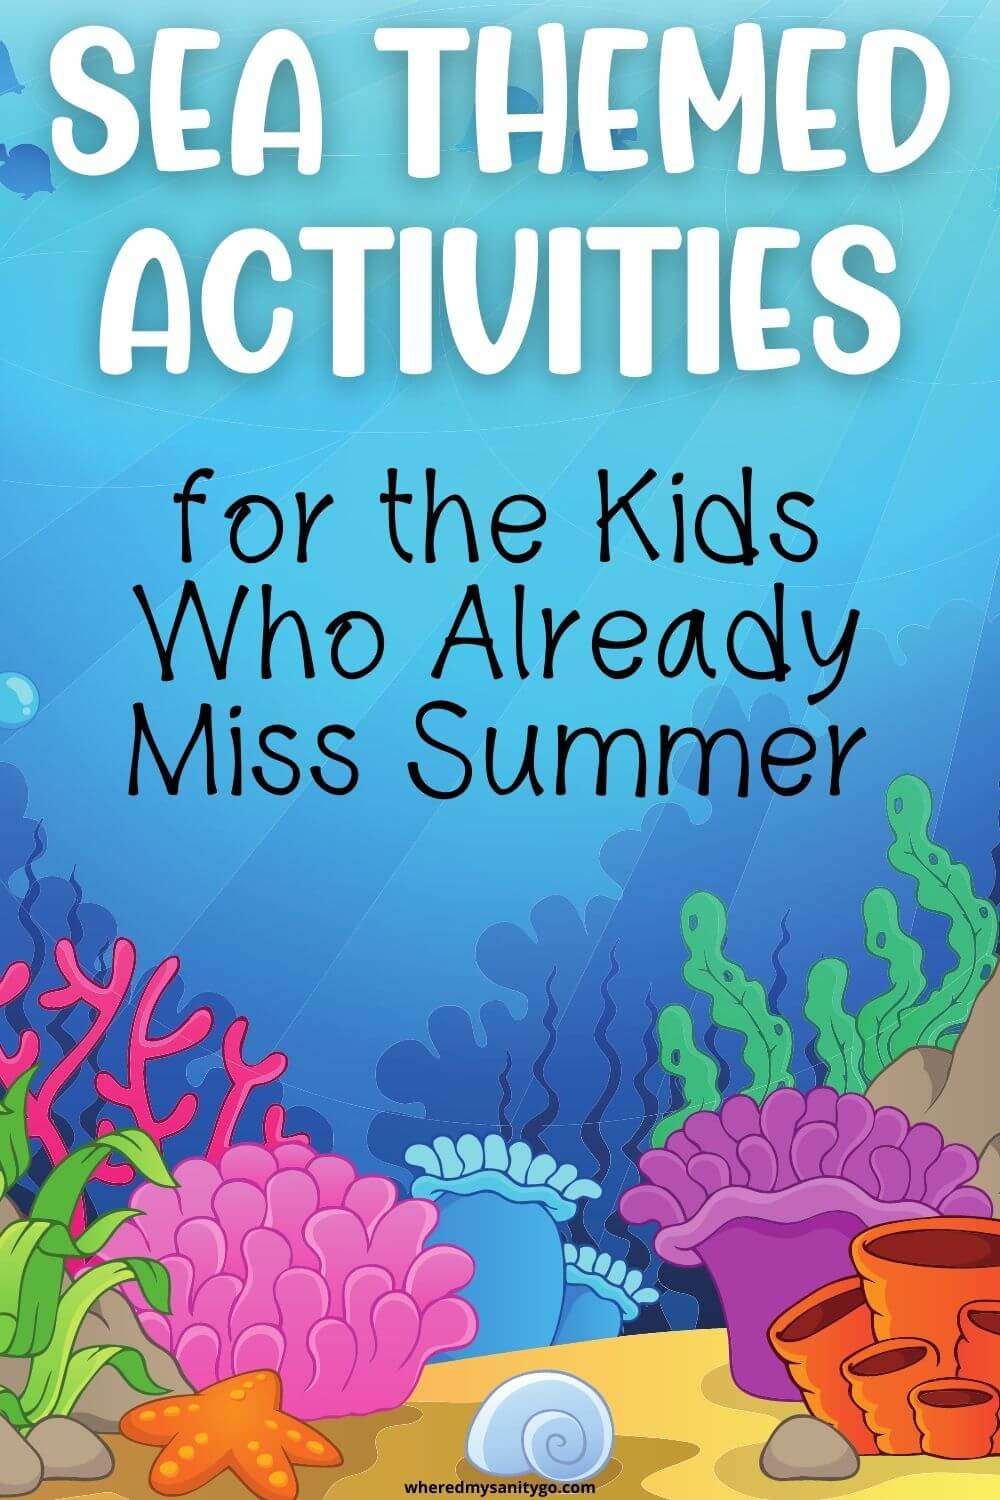 Sea Themed Activities for the Kids Who Already Miss Summer